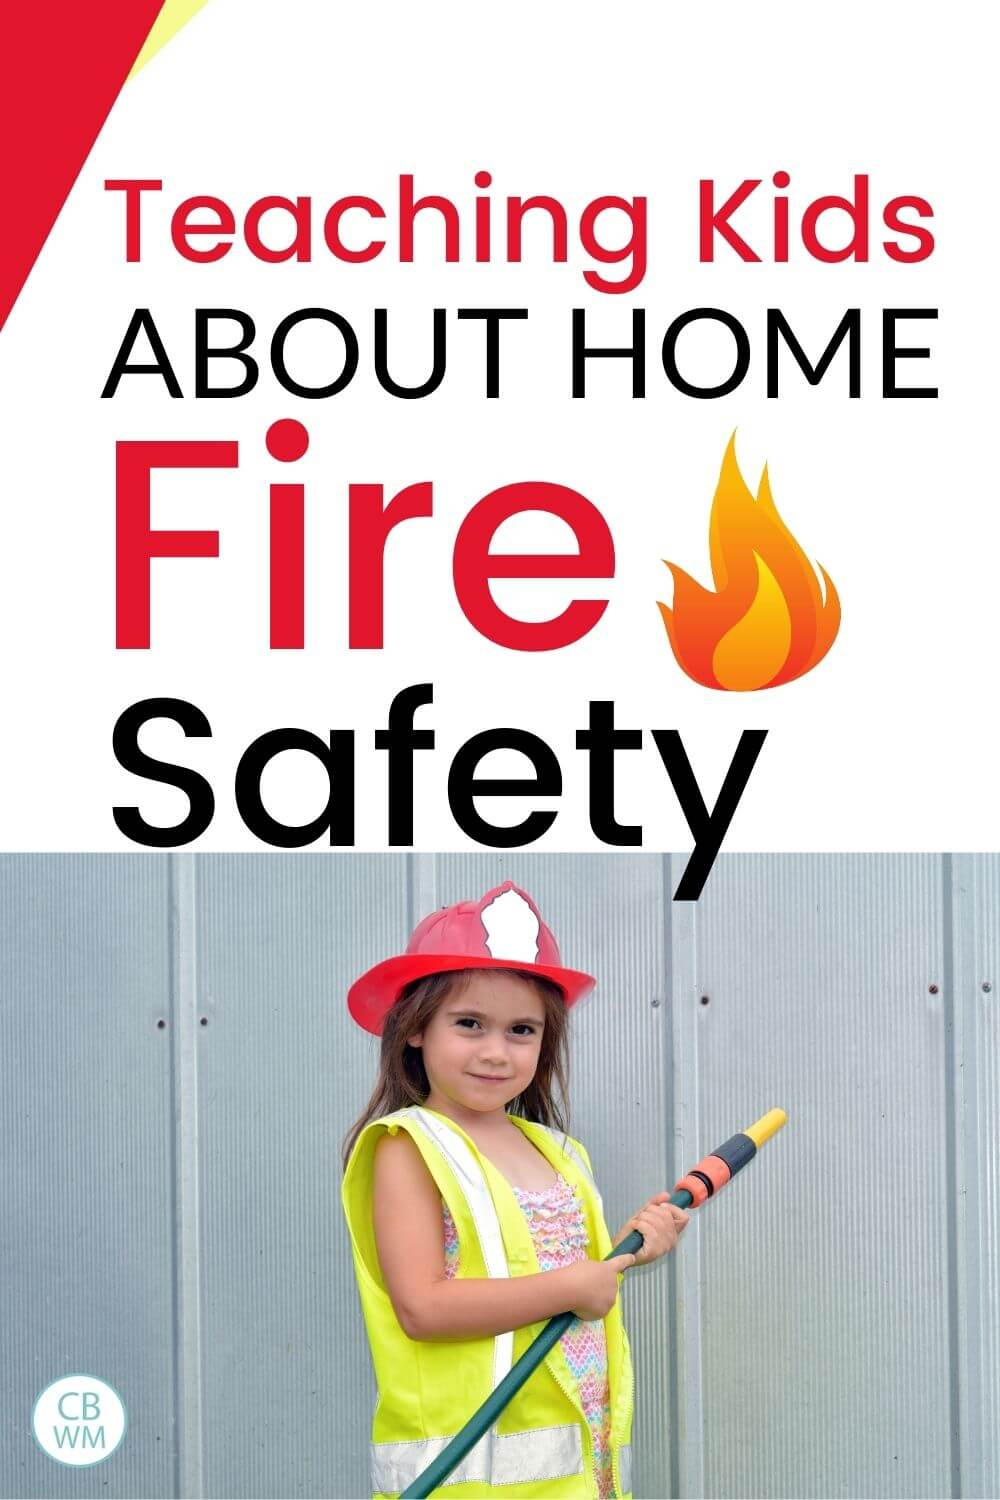 Teaching home fire safety to kids